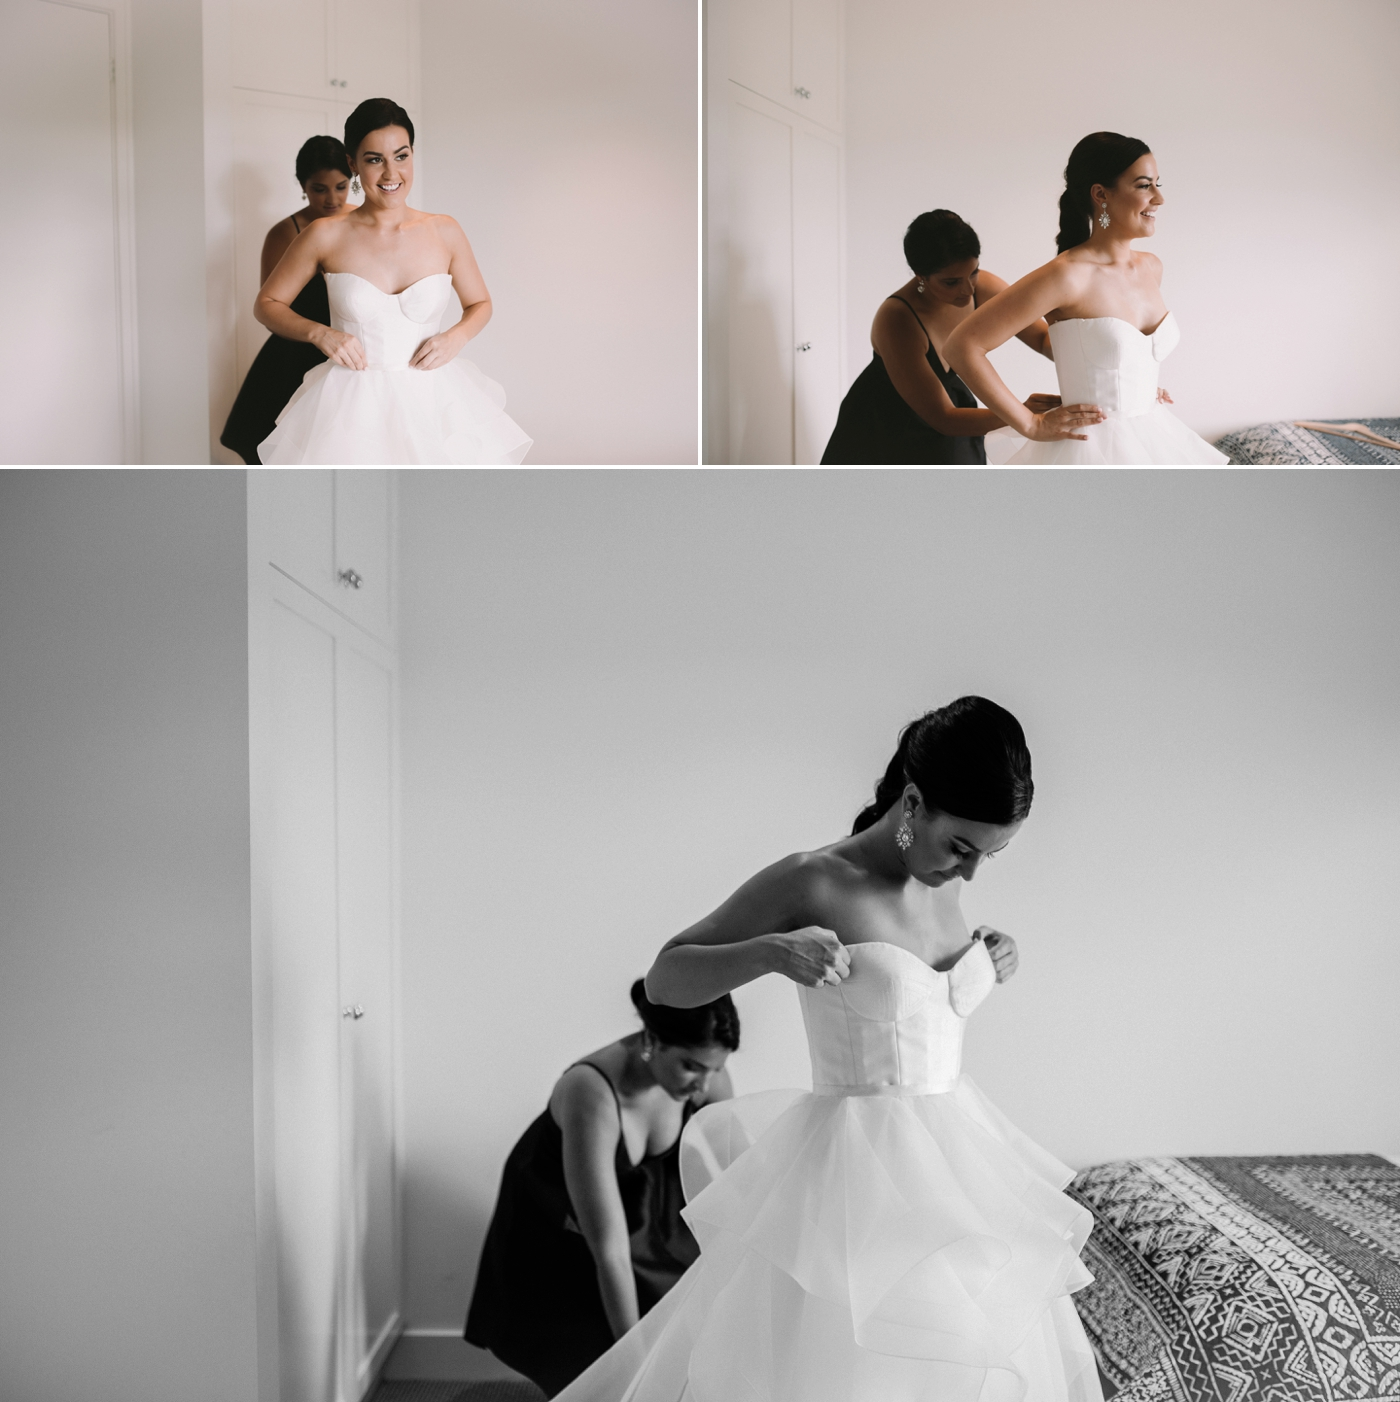 Sarah & Jamie - Kingsbrook Estate Wedding Photography - Natural wedding photographer in Adelaide - www.katherineschultzphotography.com 19